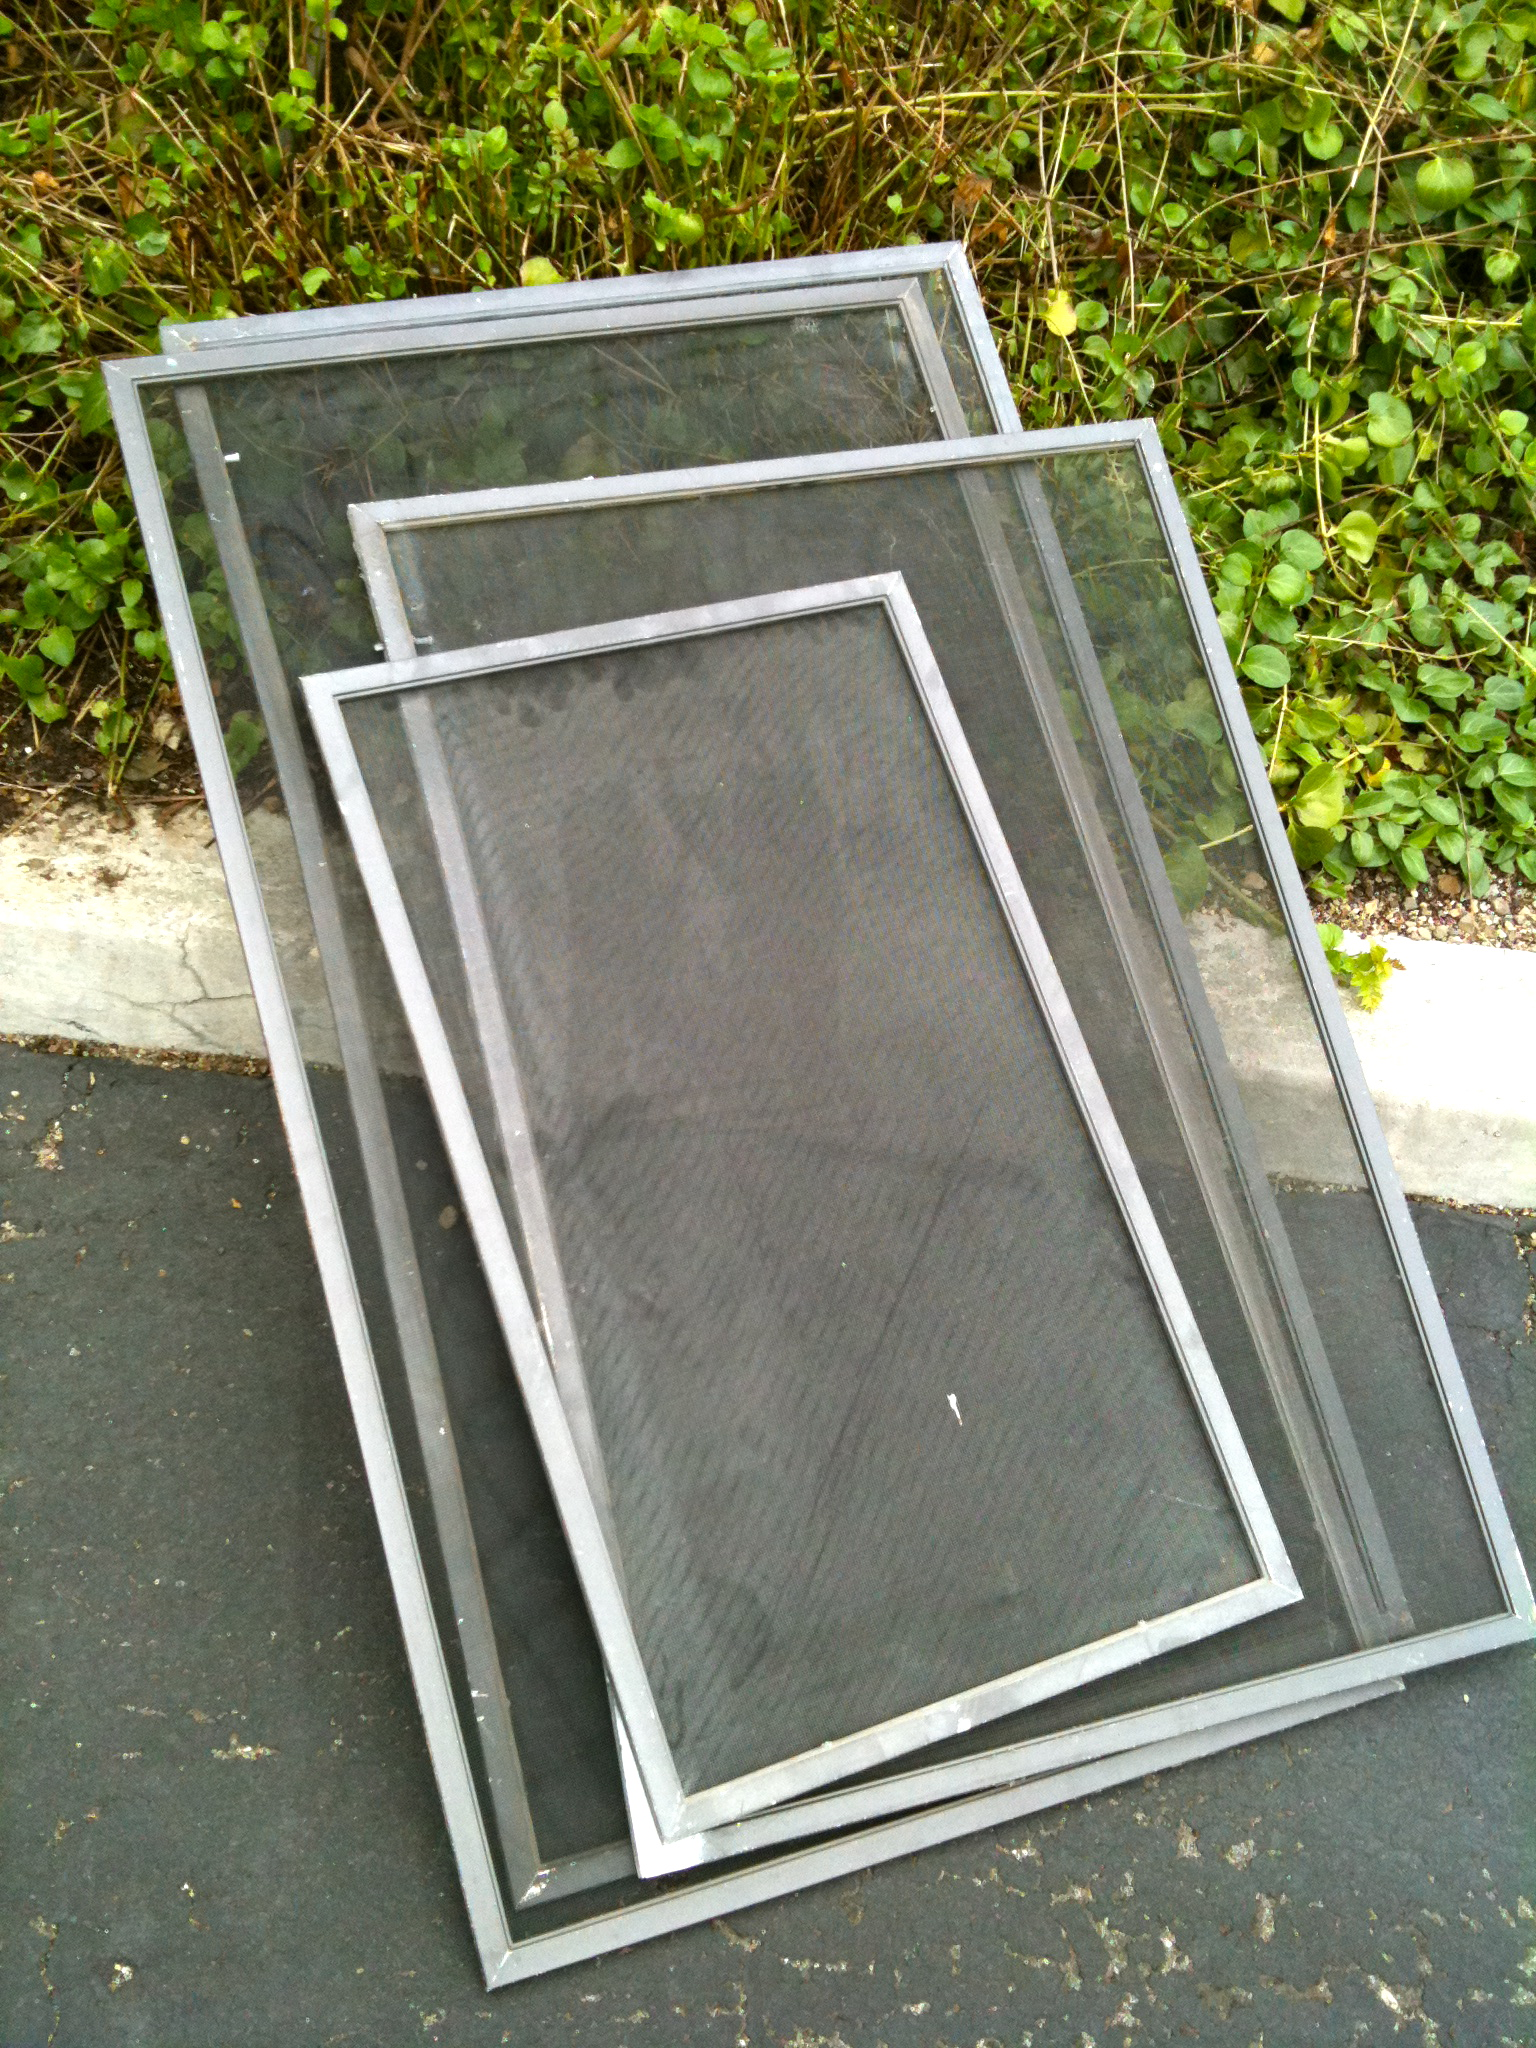 Window Mesh Screen Of Rescreening Screen Door And Window Screen Repair And